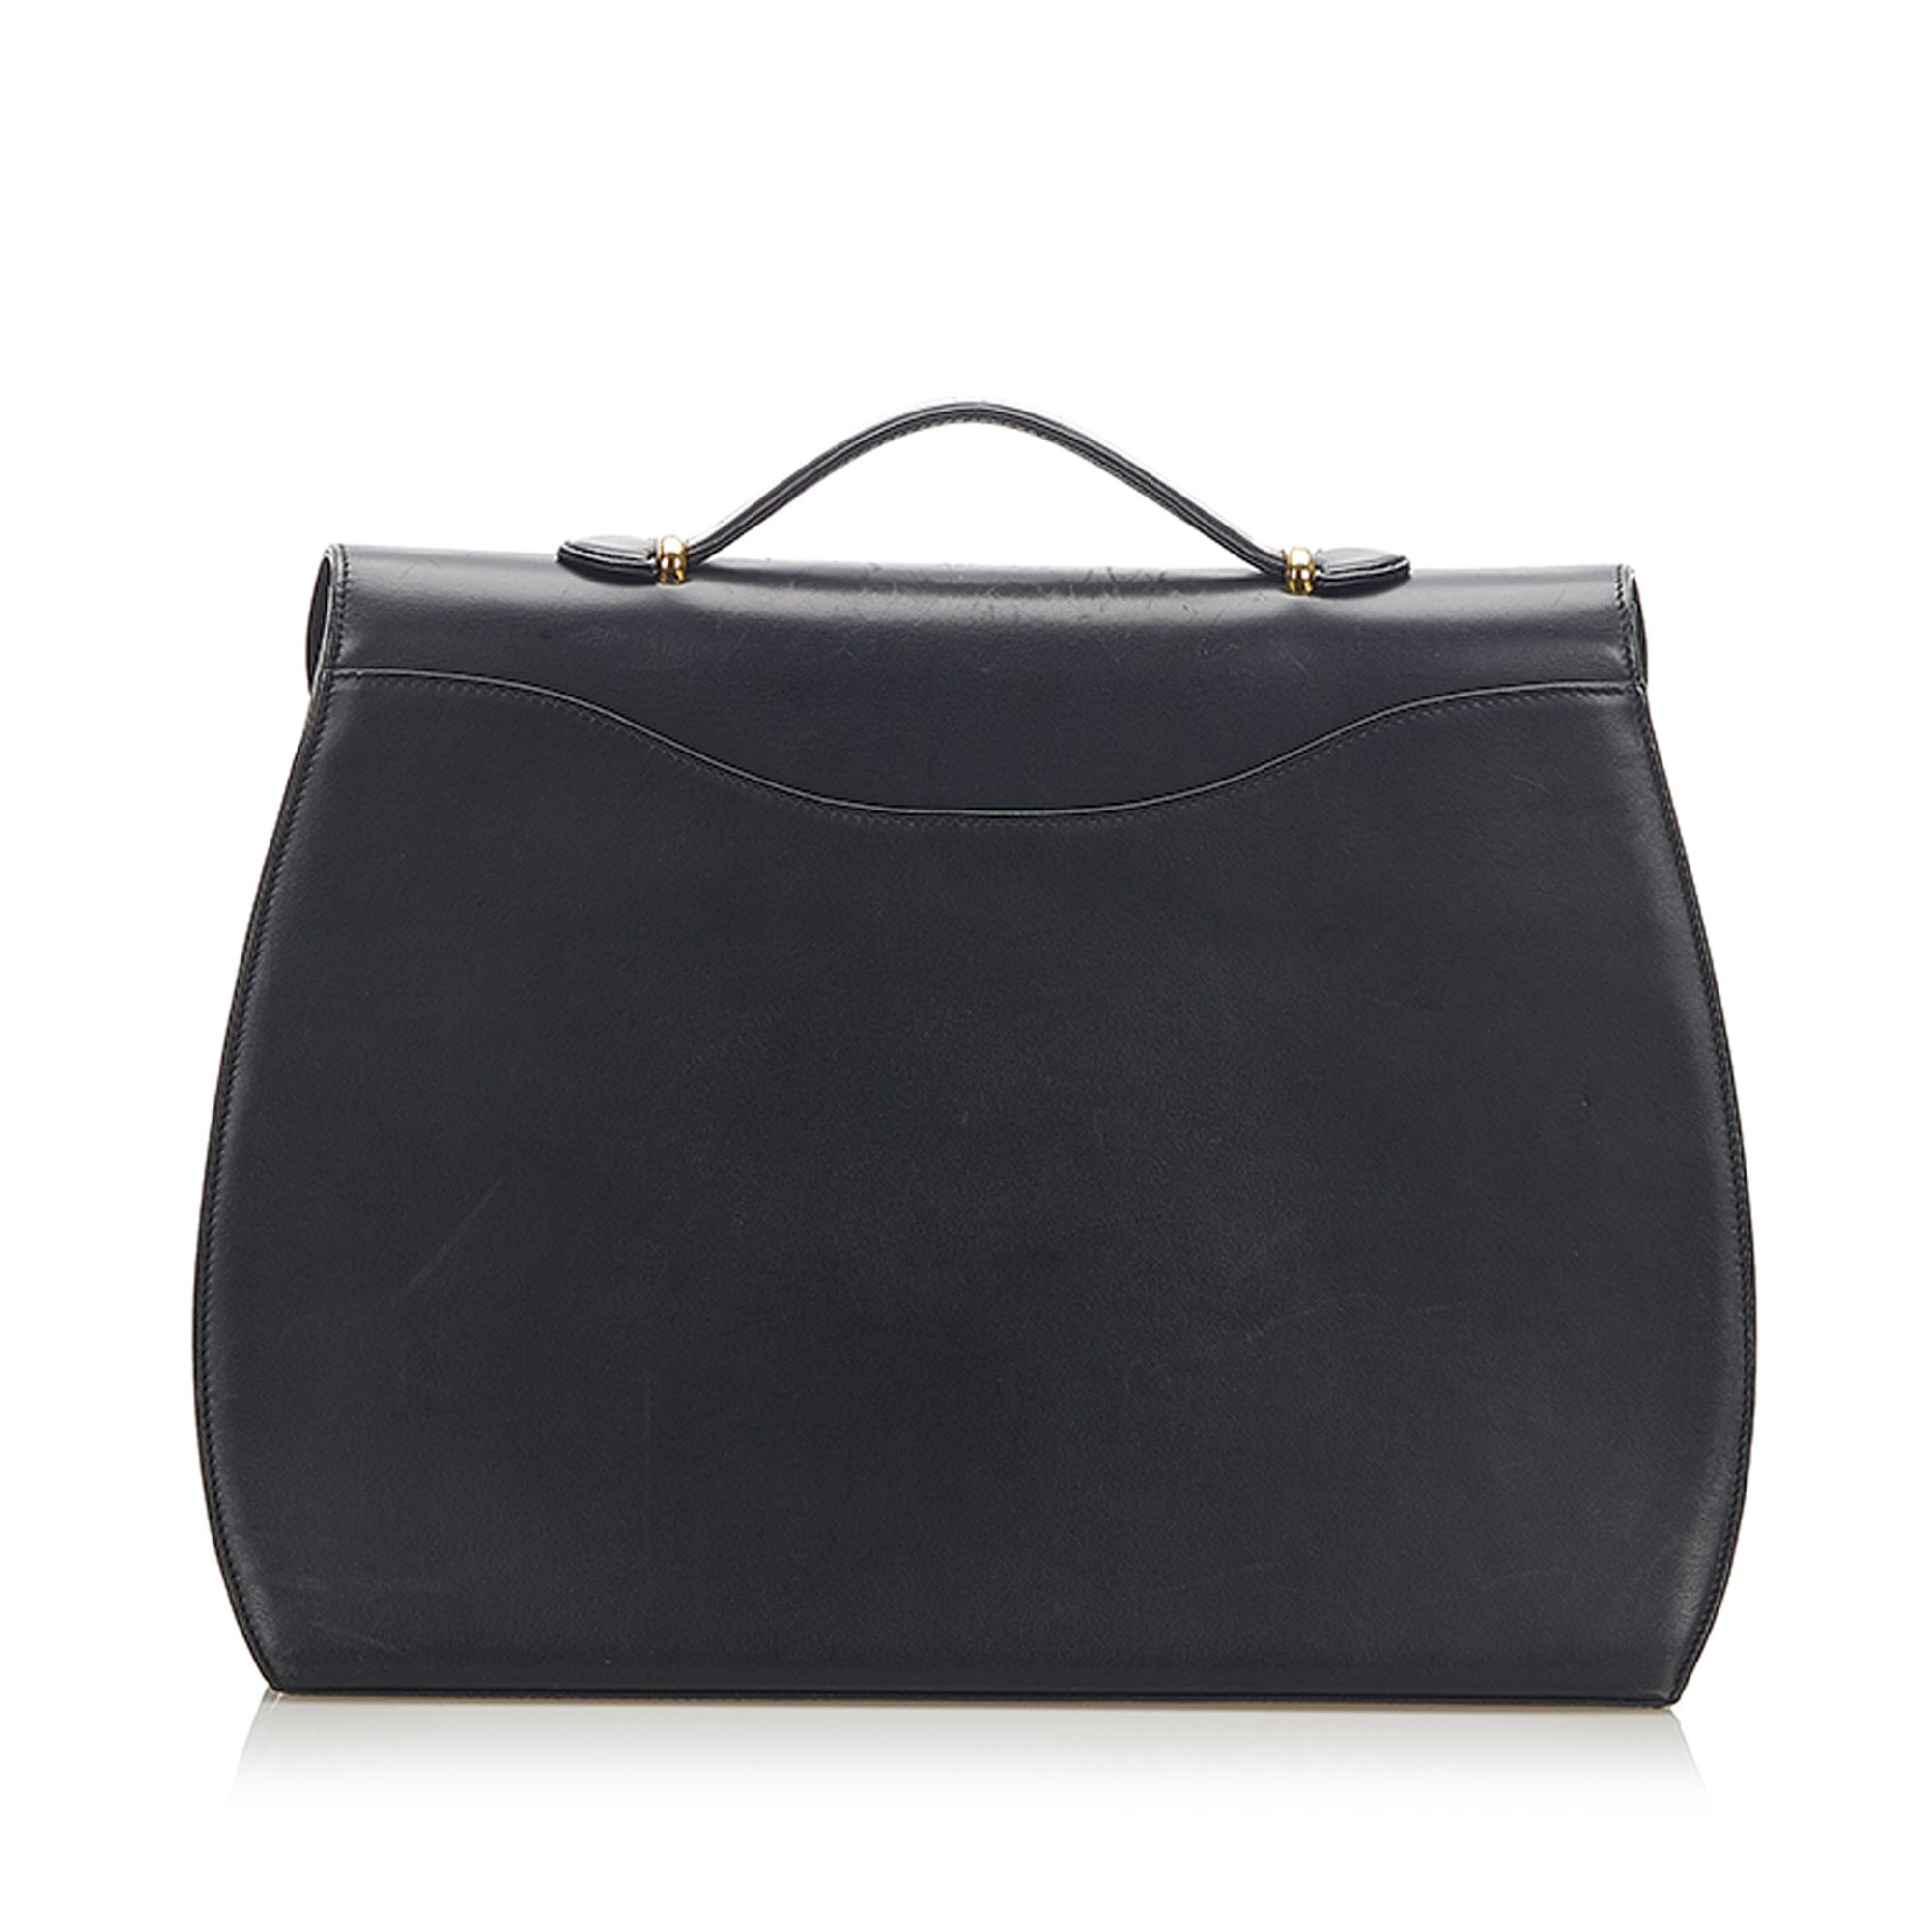 Vintage Cartier Panthere Leather Briefcase Black